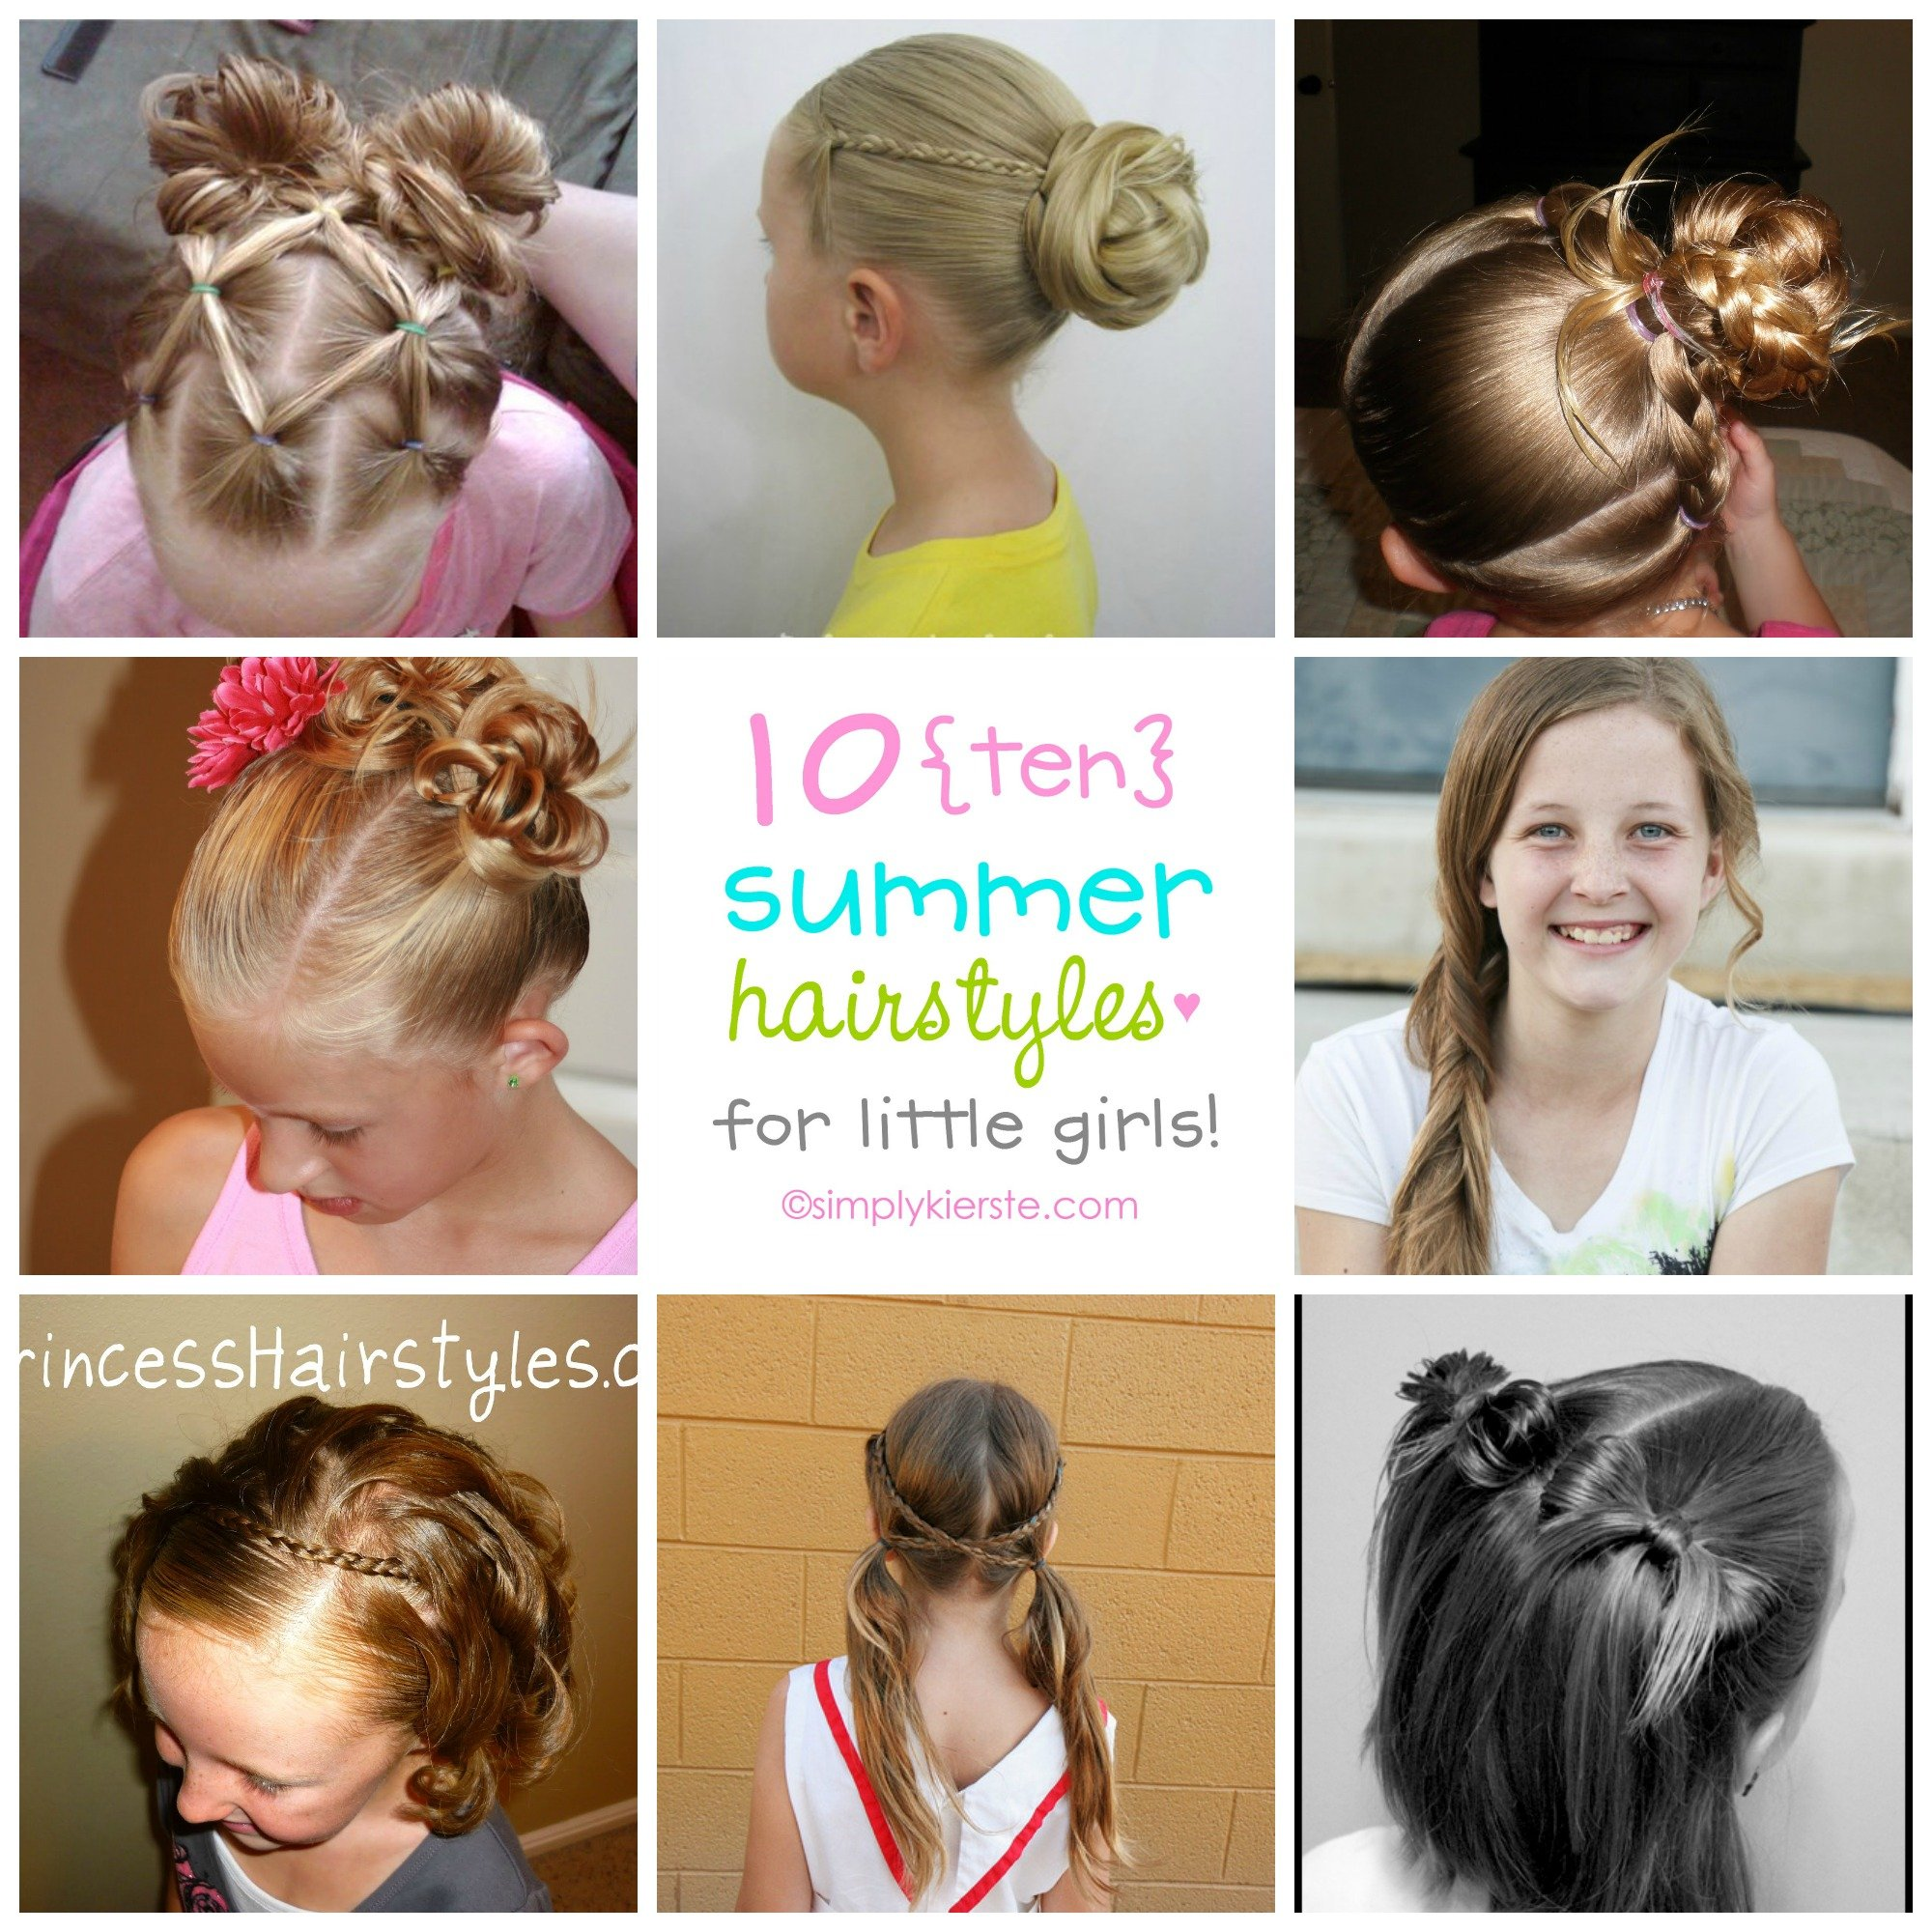 10 fun summer hairstyles for little girls | simplykierste